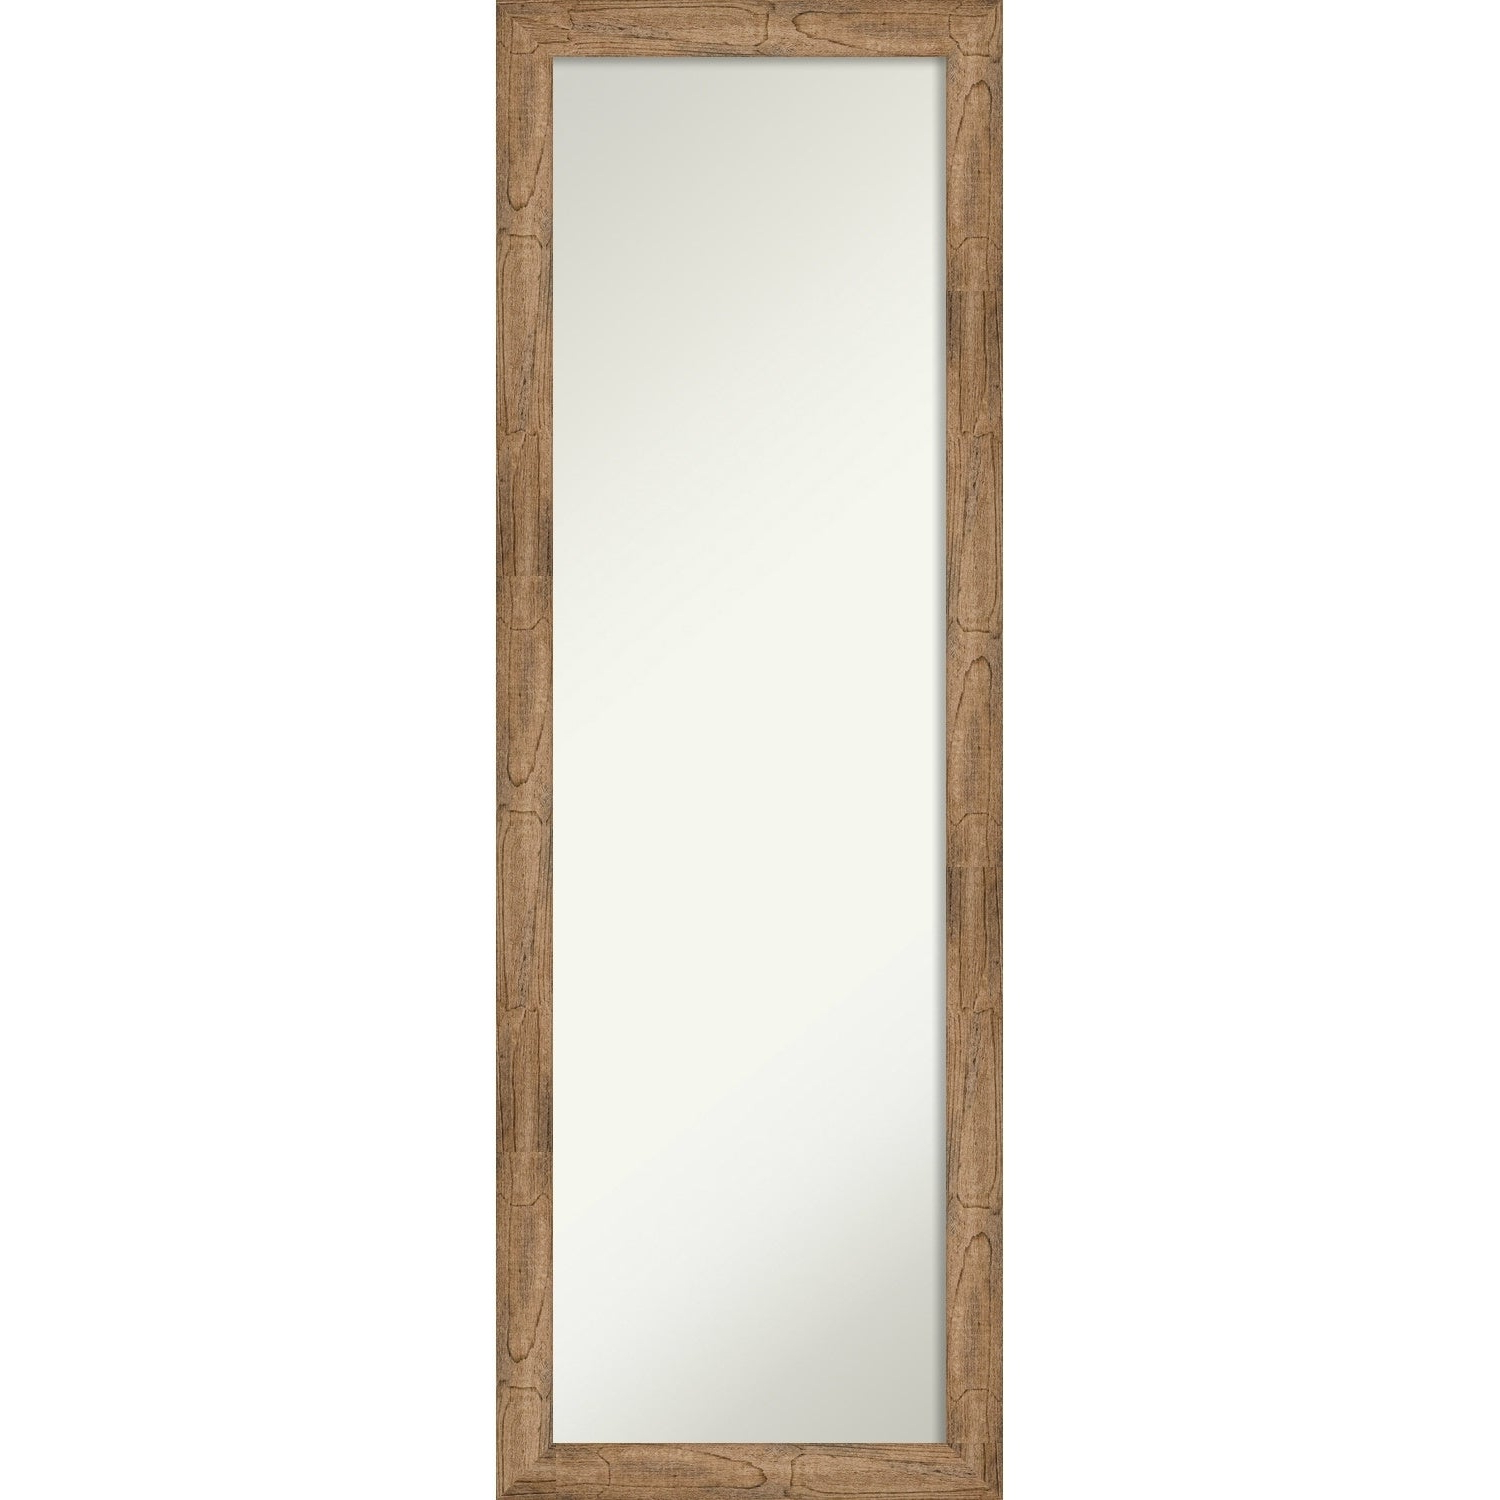 On The Door Full Length Wall Mirror, Owl Brown Narrow: Outer Size 17 X  51 Inch – 51.38 X 17.38 X 0.795 Inches Deep With Preferred Handcrafted Farmhouse Full Length Mirrors (Gallery 15 of 20)